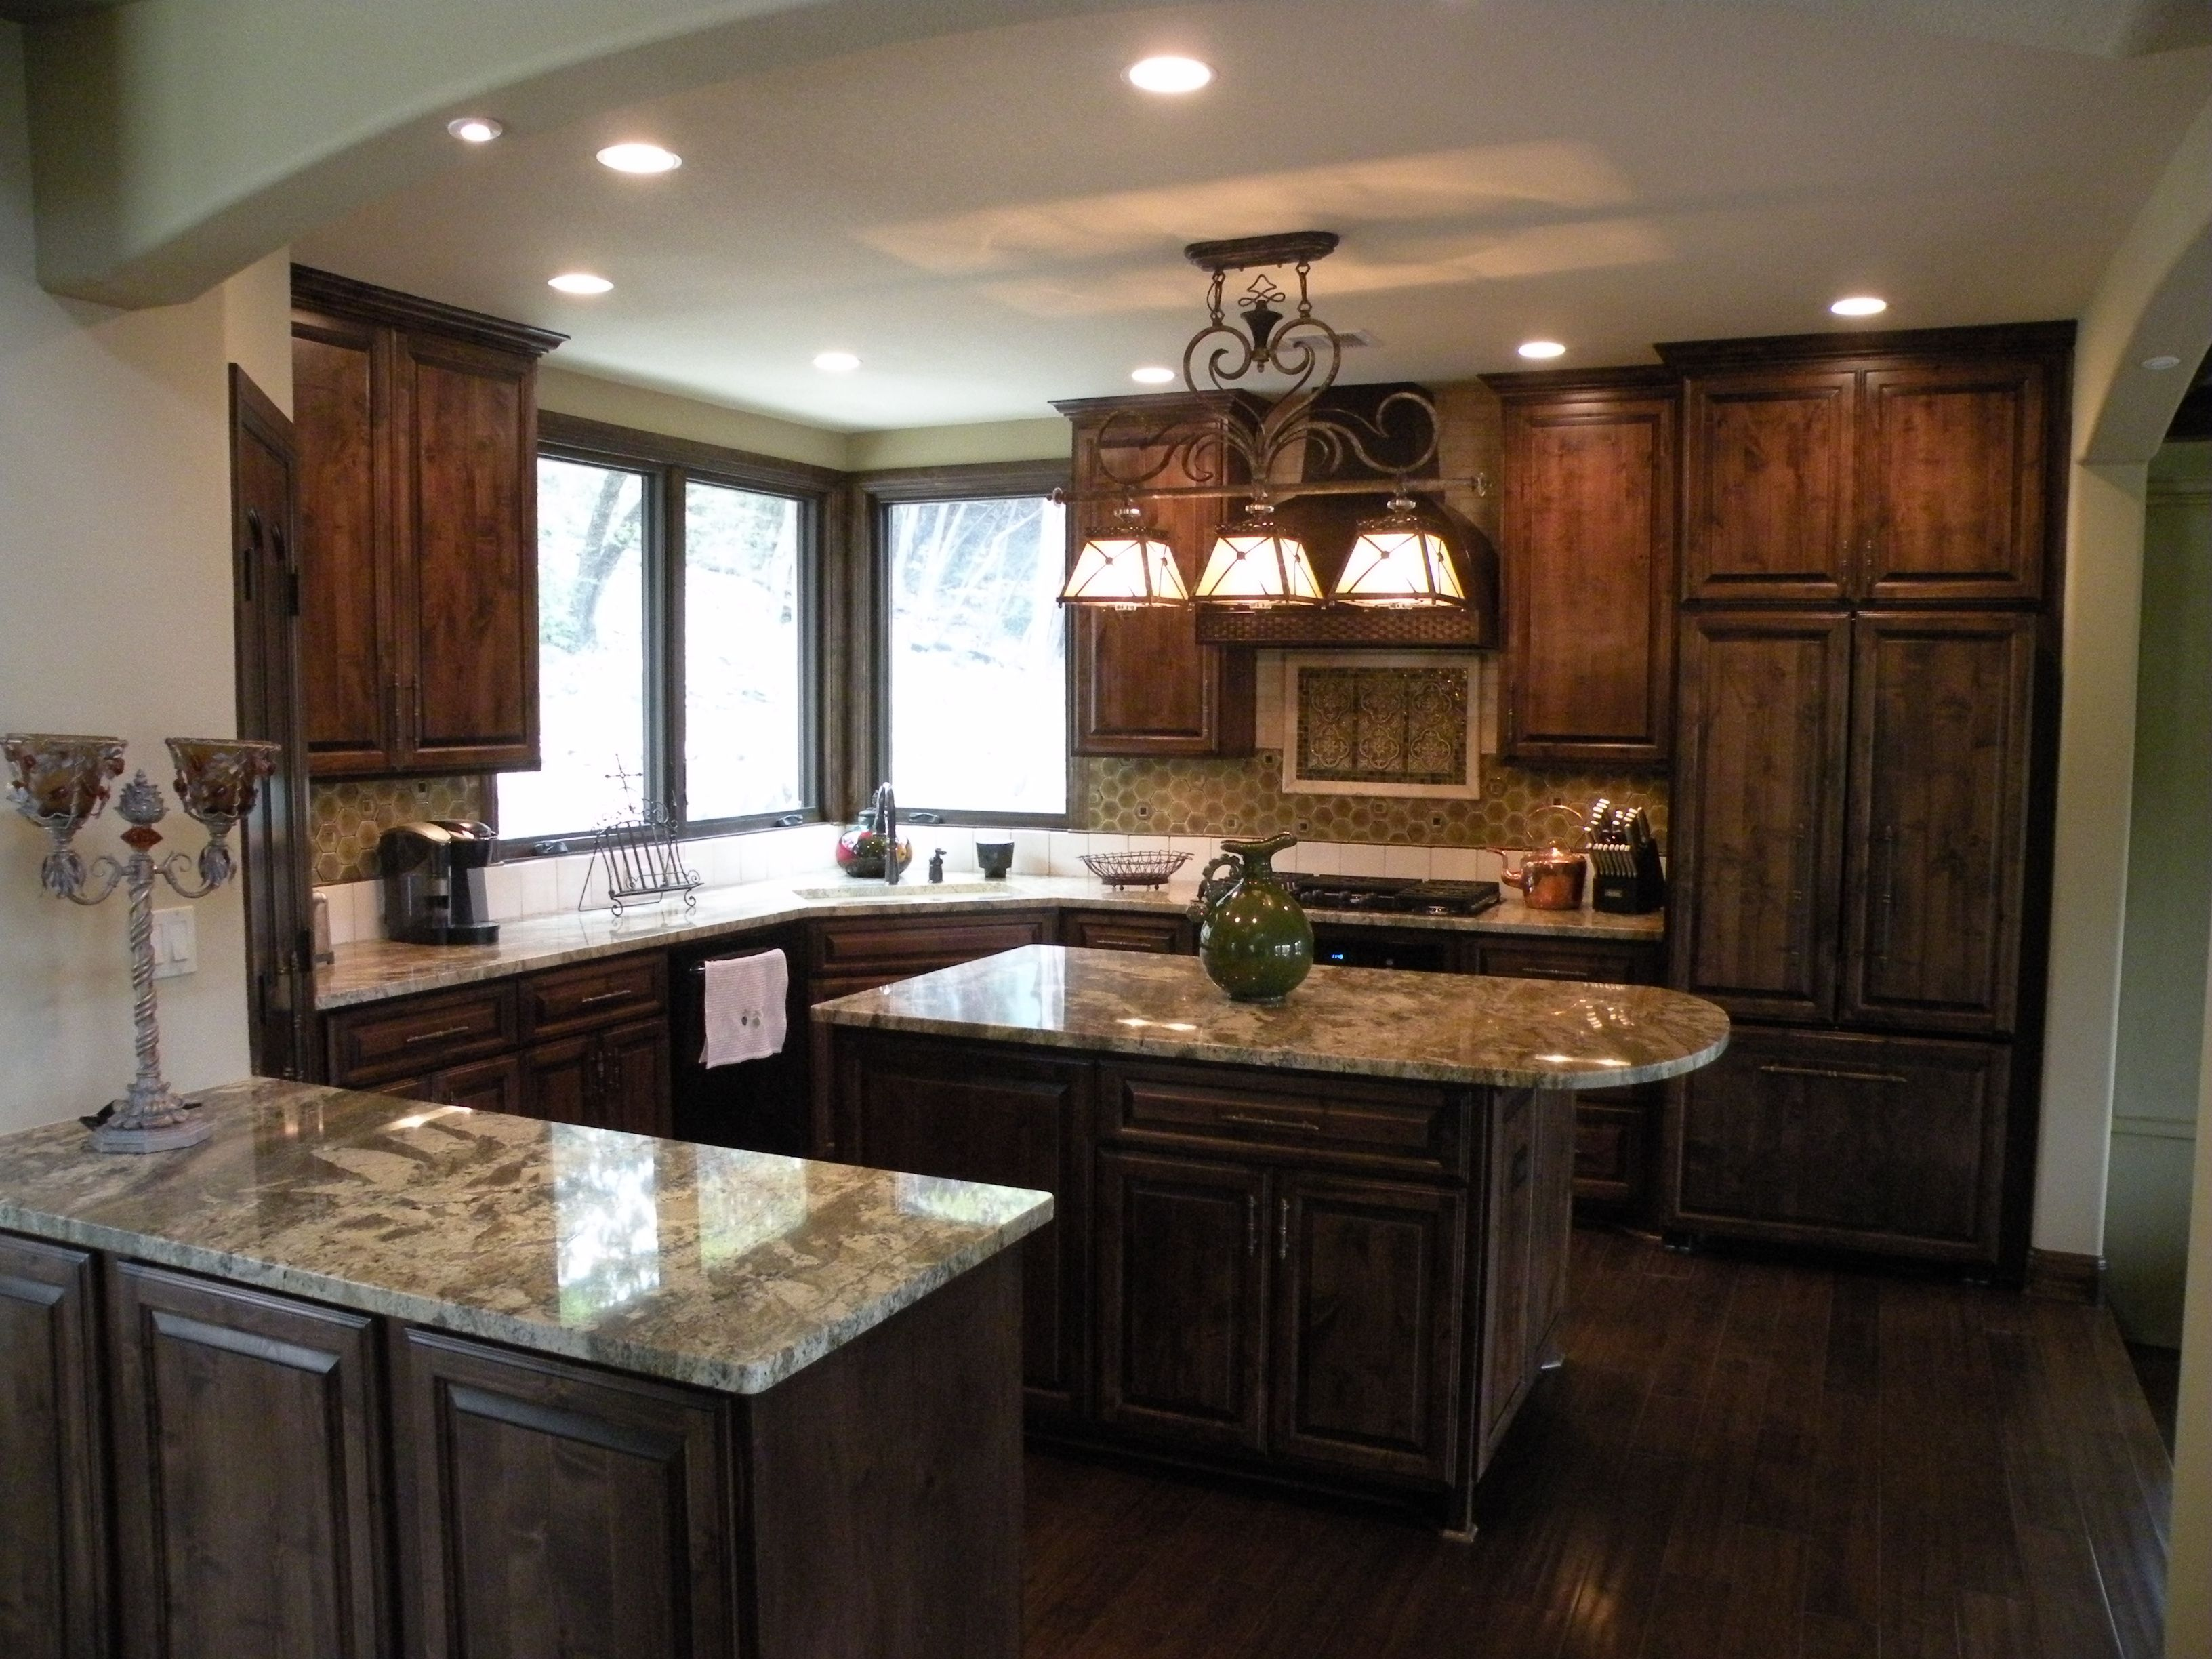 Very Comfortable Kitchen Layout Cabinets Are Knotty Alder